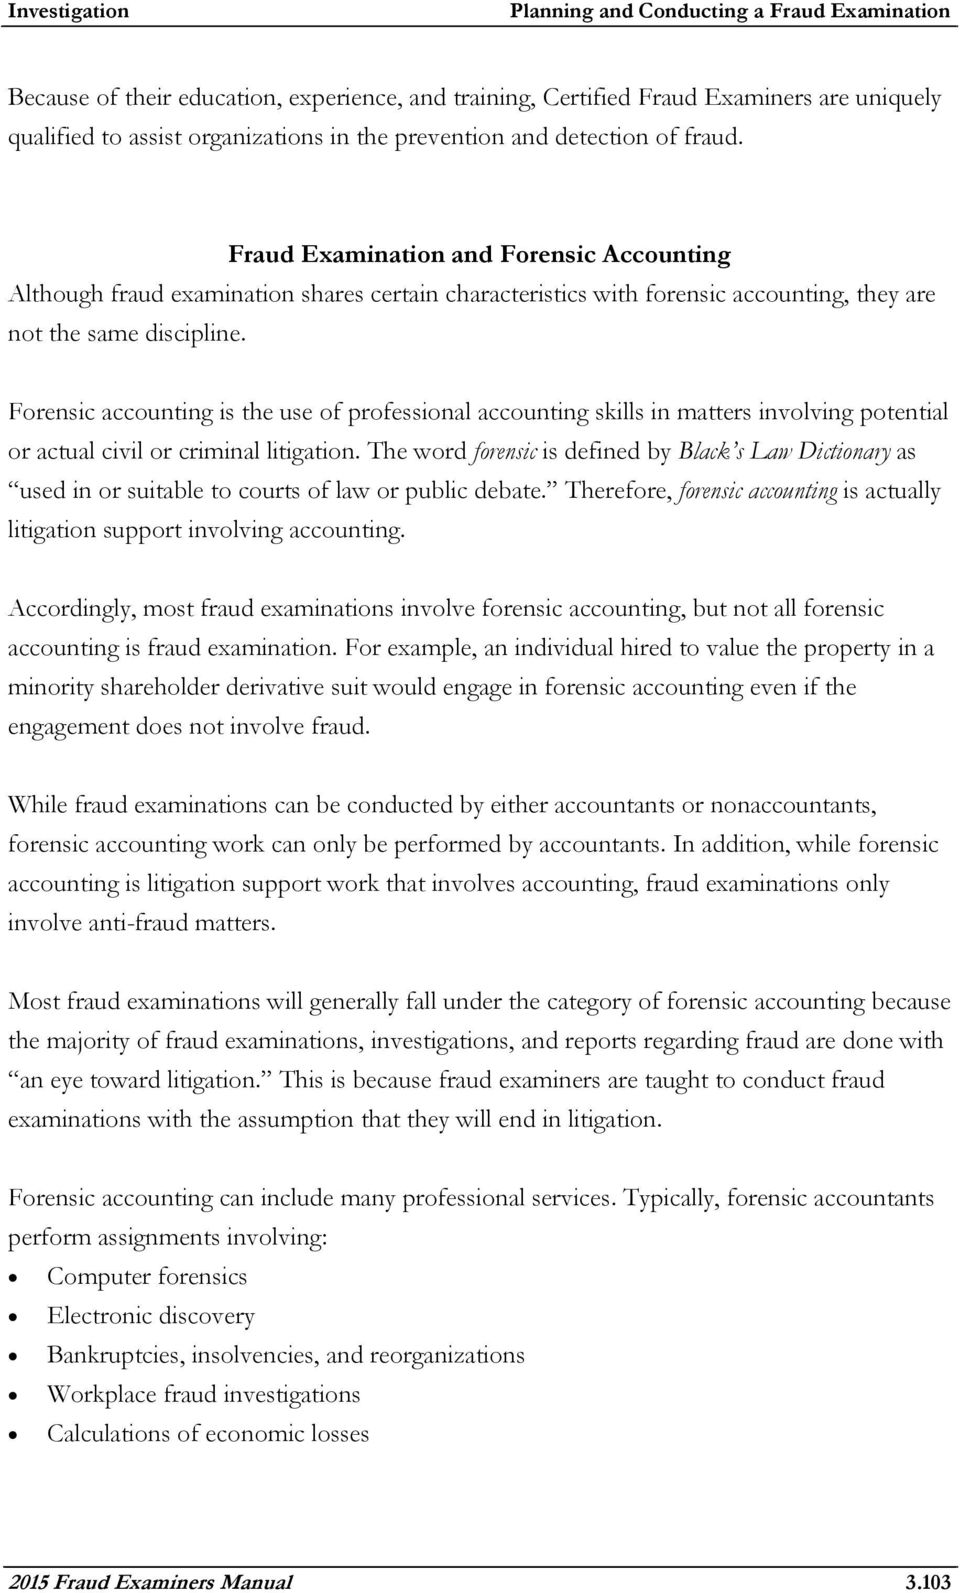 ... 2015 Fraud Examiners Manual 3.103. Forensic accounting is the use of  professional accounting skills in matters involving potential or actual  civil